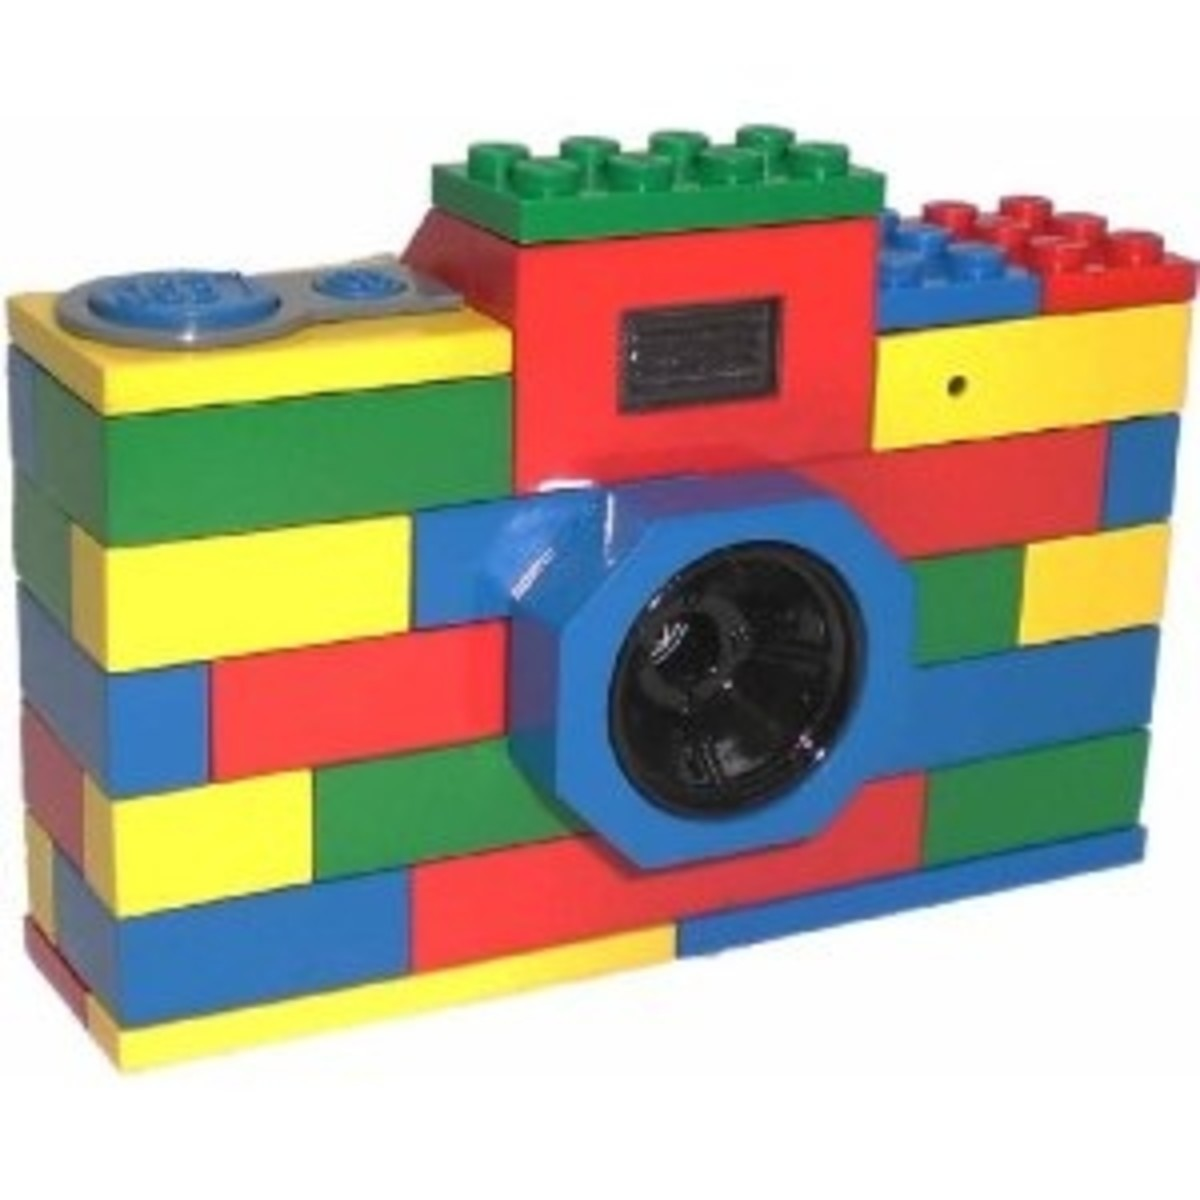 Lego Camera front view